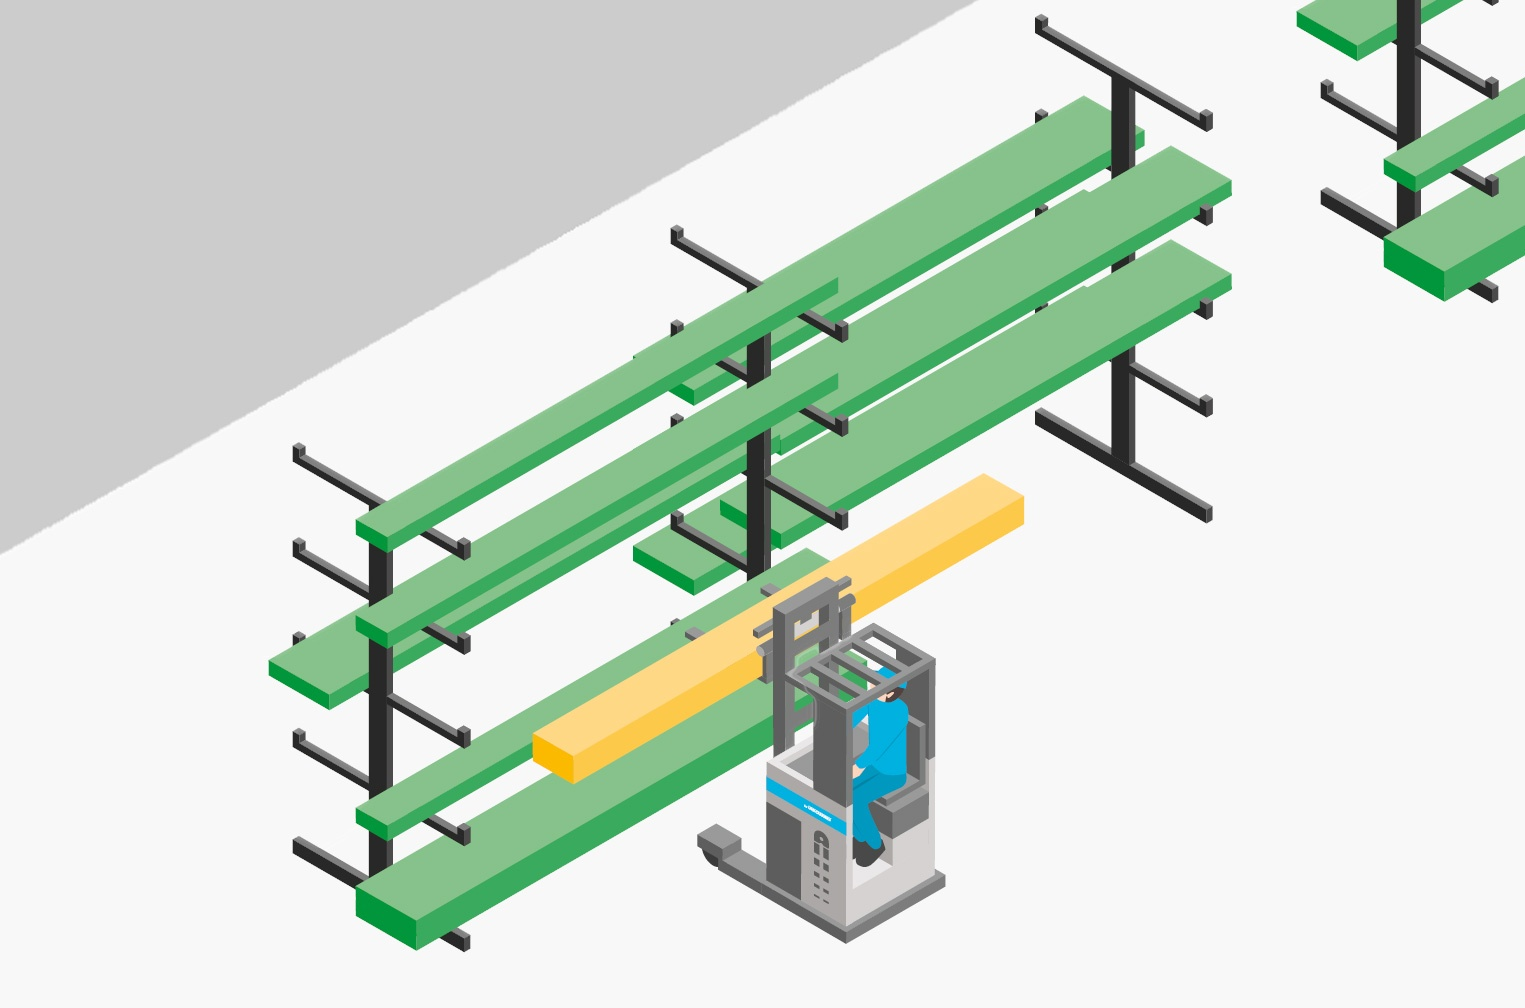 cantilever-racking-illustration-v2.jpg